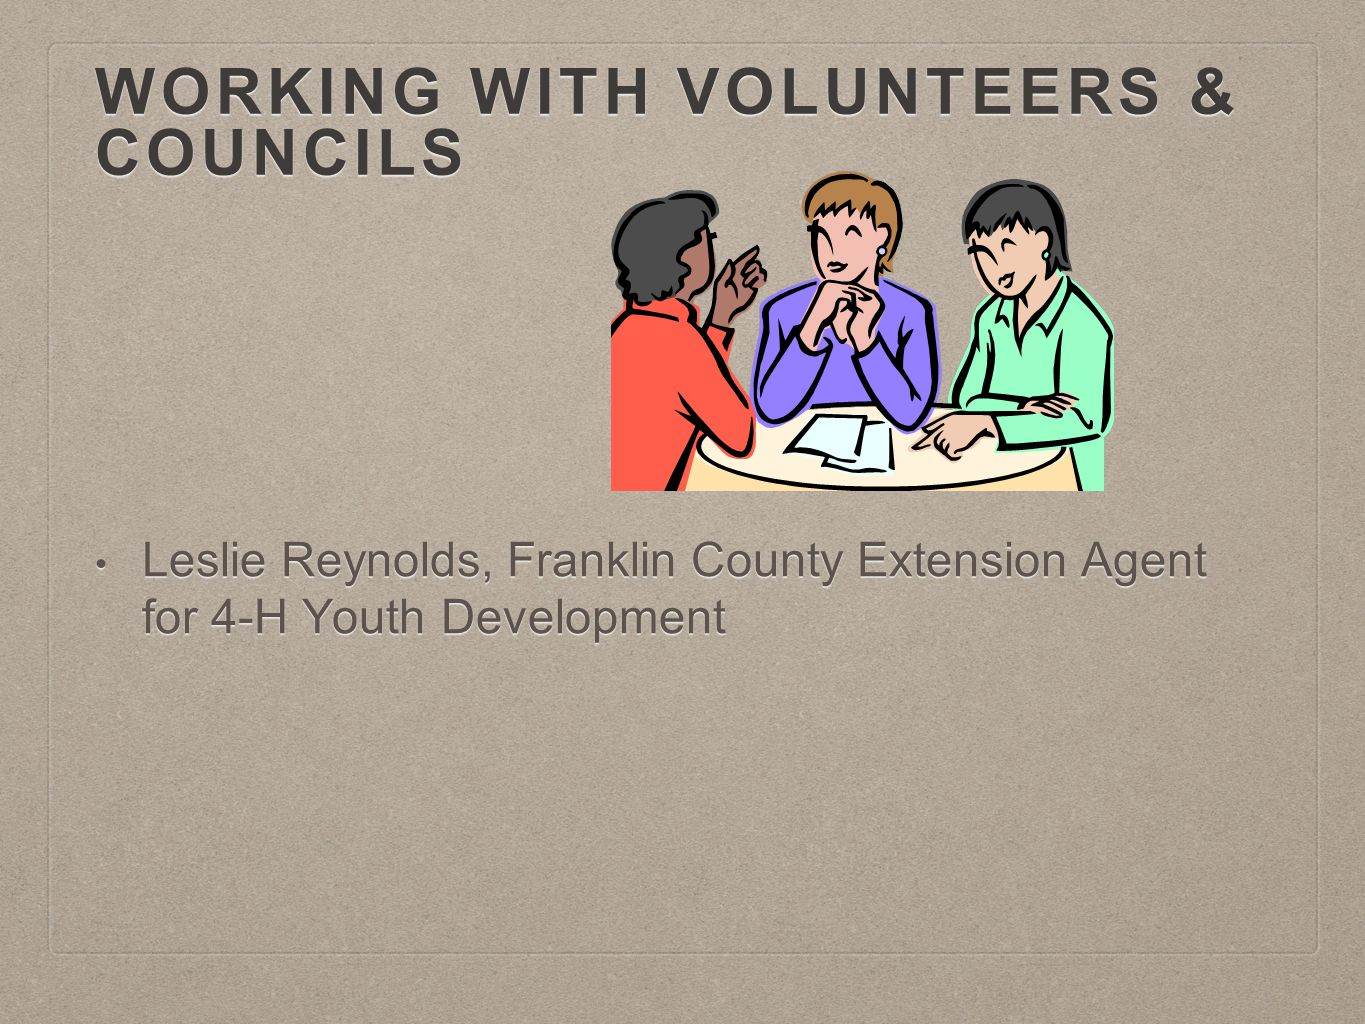 WORKING WITH VOLUNTEERS & COUNCILS Leslie Reynolds, Franklin County Extension Agent for 4-H Youth Development Leslie Reynolds, Franklin County Extension Agent for 4-H Youth Development